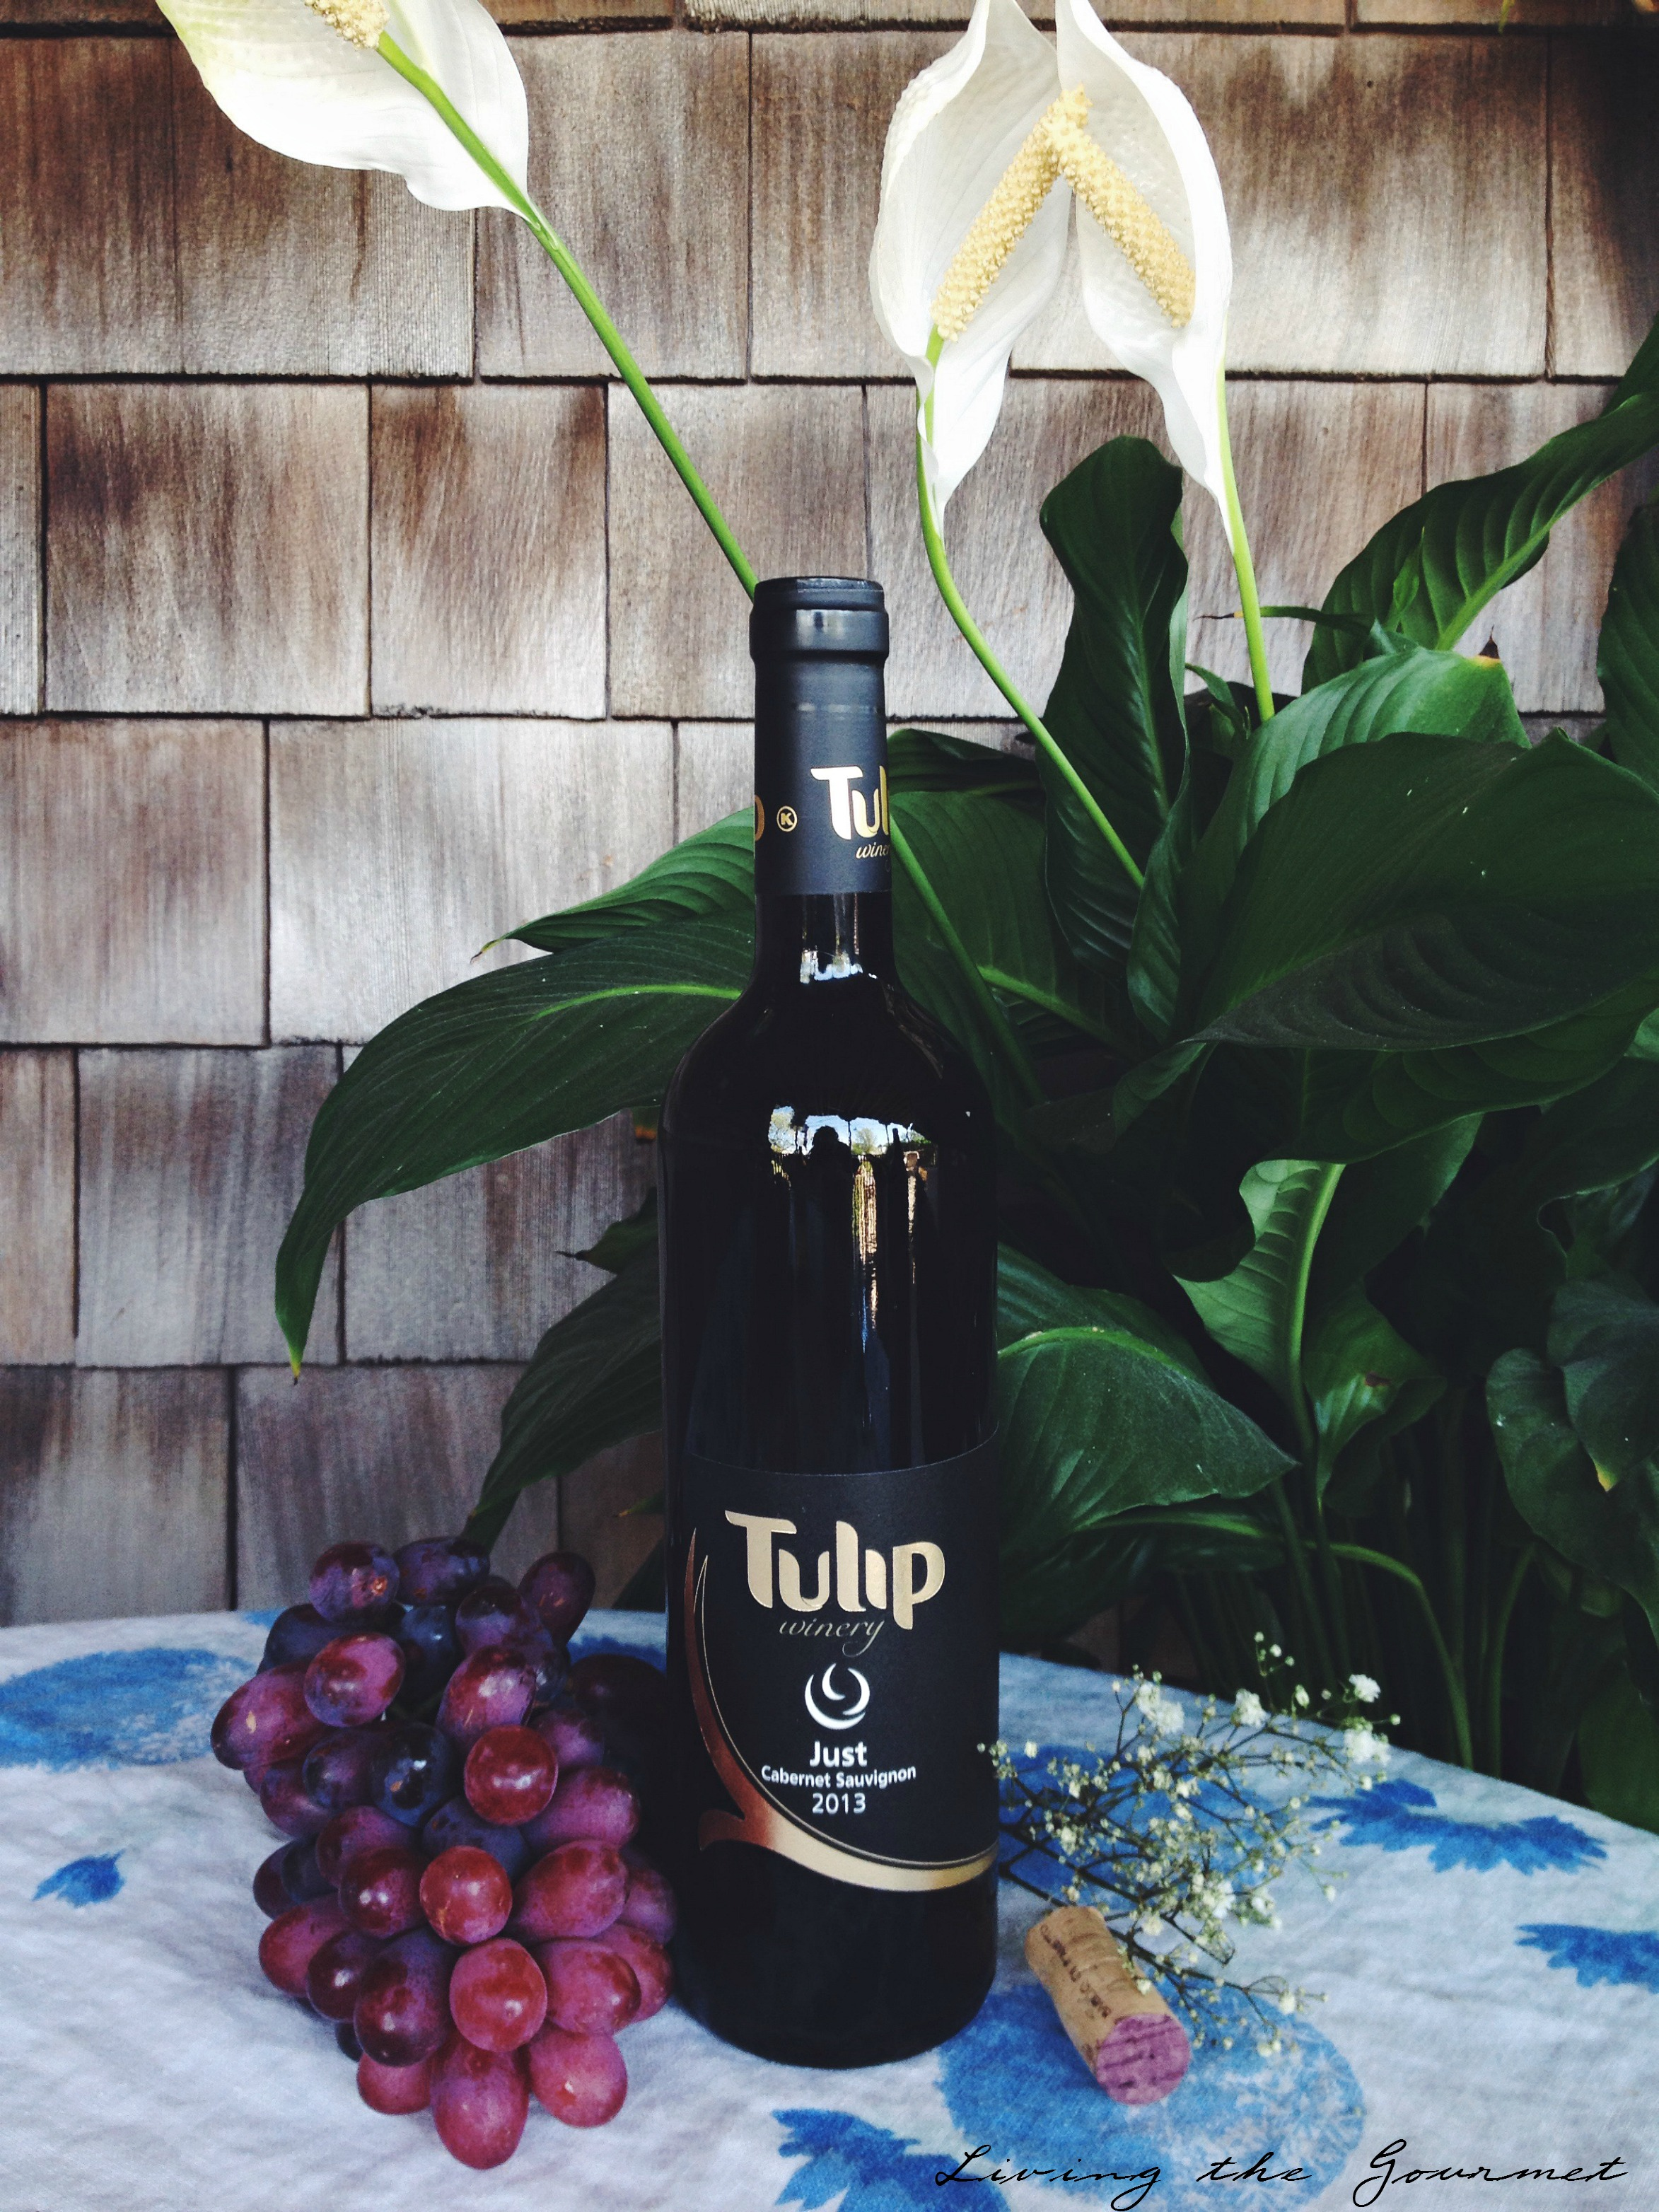 Living the Gourmet: Tulip Winery #WineWeek #LTG